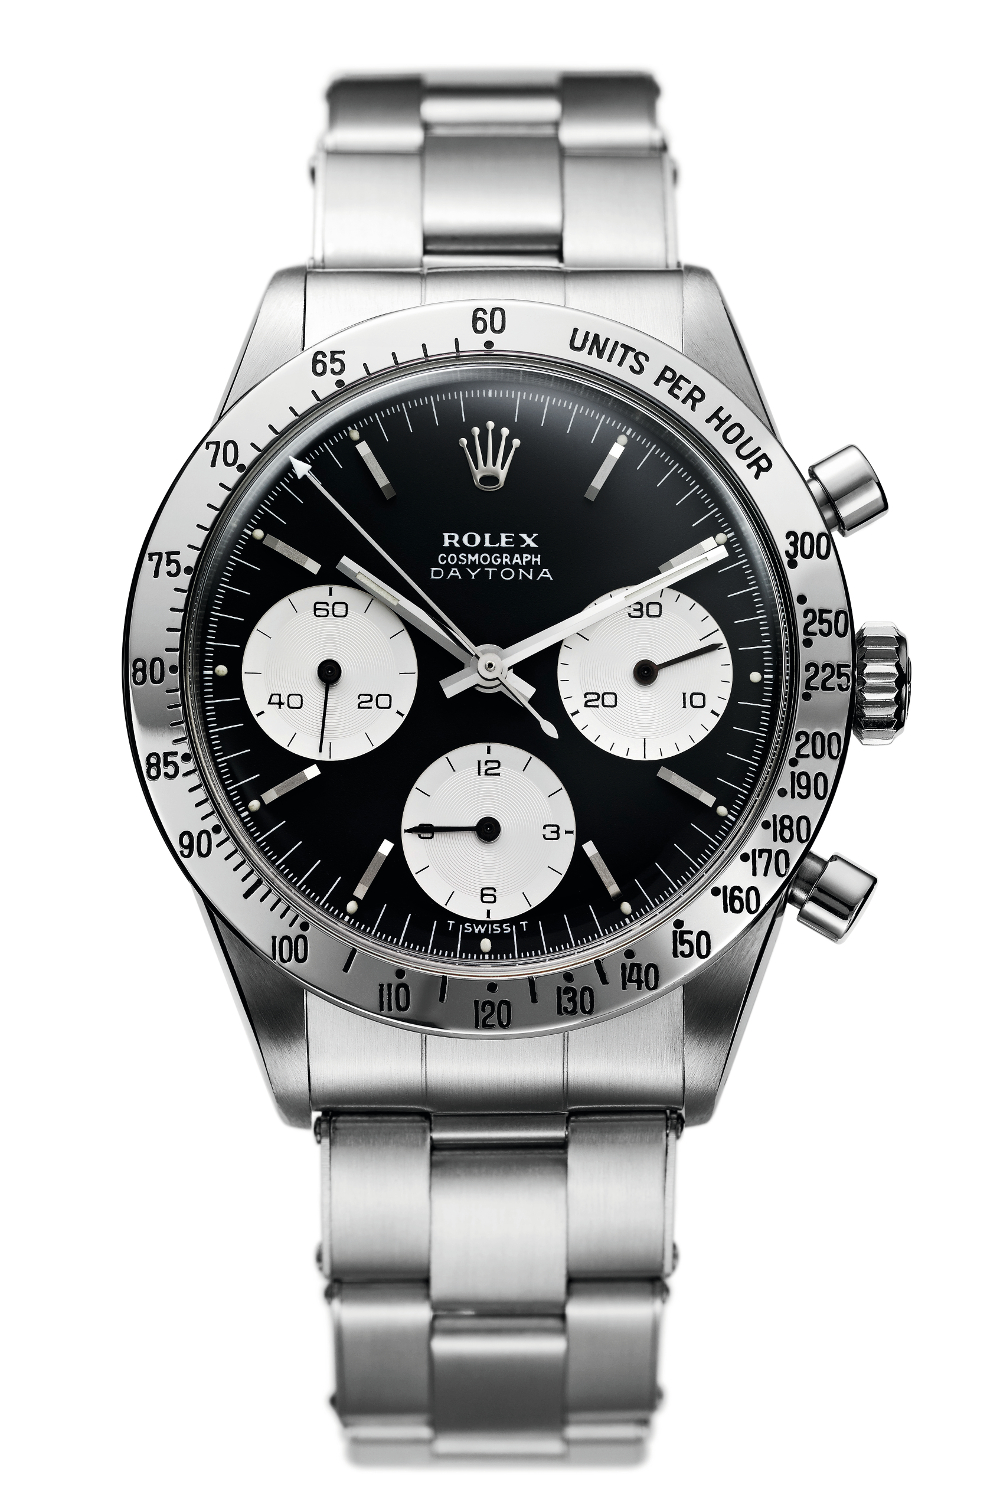 The first Rolex Cosmograph Daytona. Photo courtesy of Rolex.